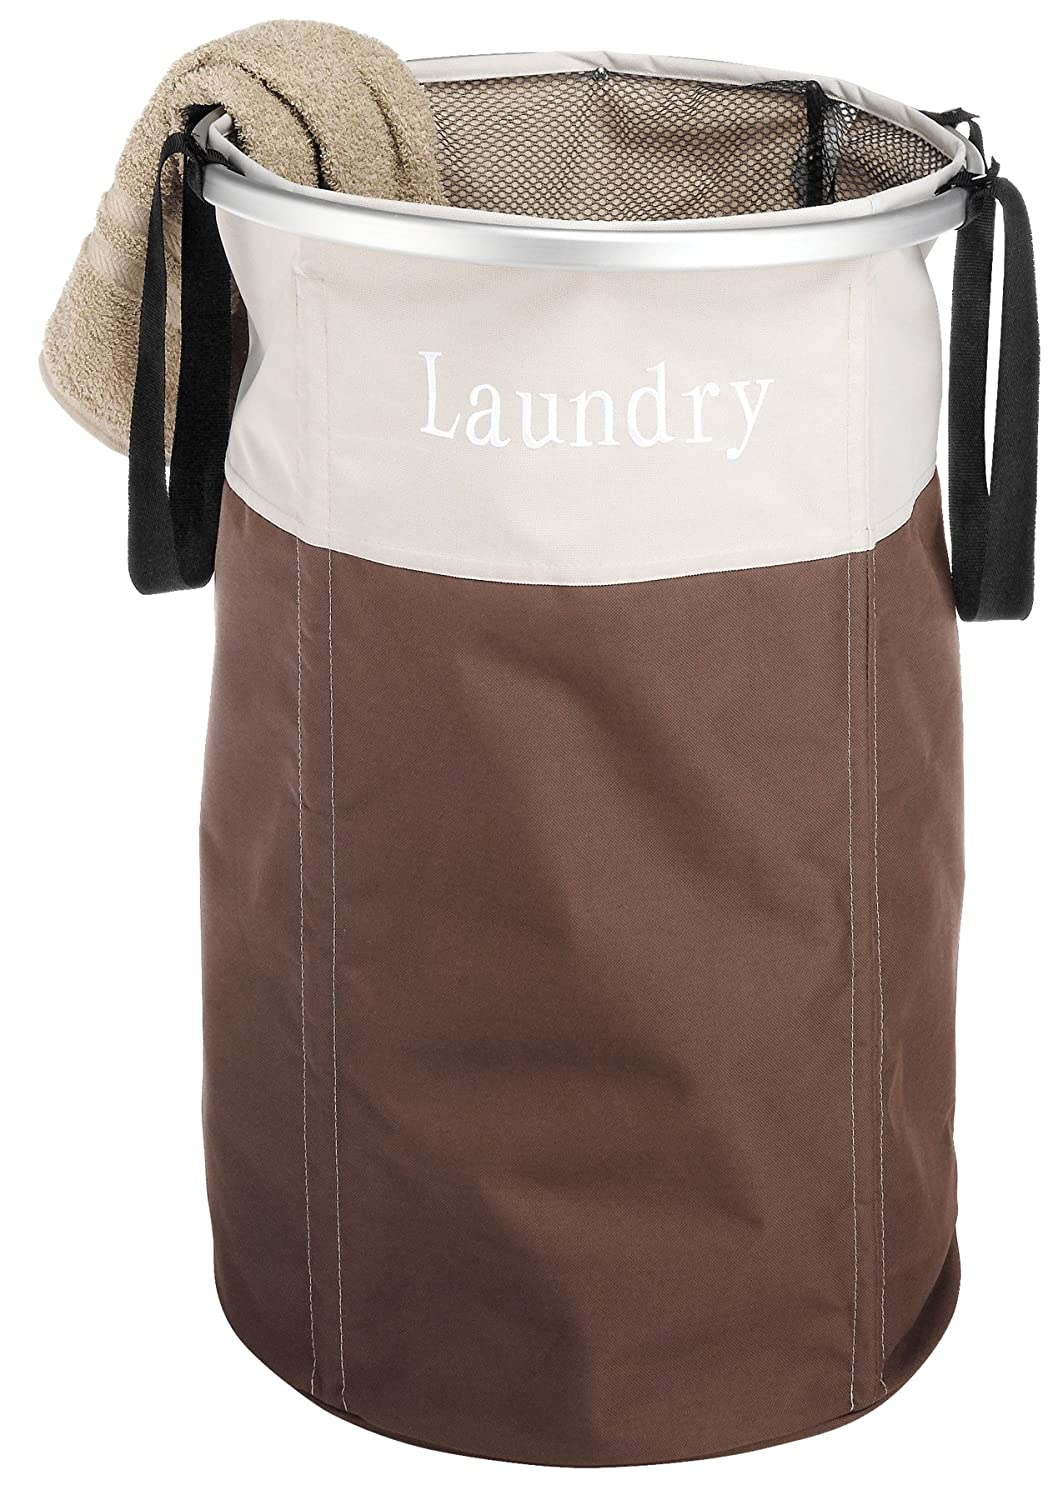 Amazon.com: Whitmor Easycare Round Laundry Hamper Java: Home & Kitchen